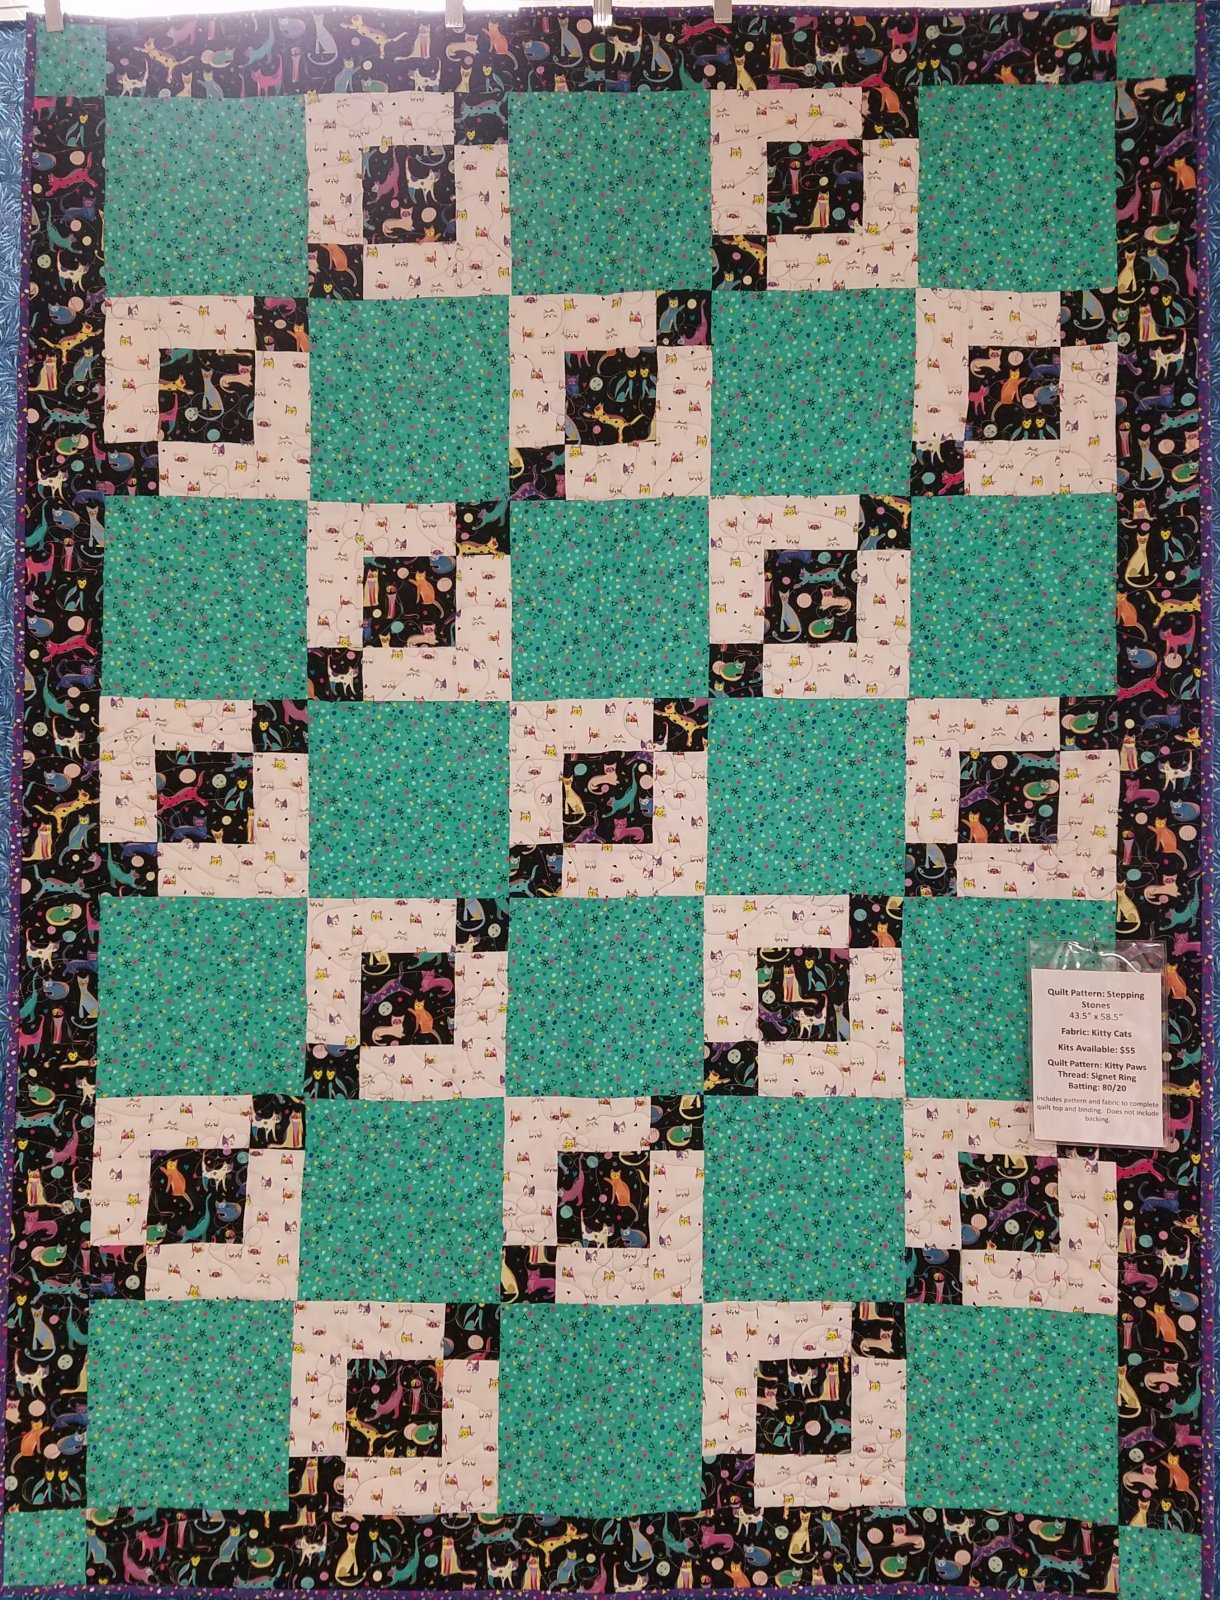 Kitty Cats Stepping Stones Quilt Kit